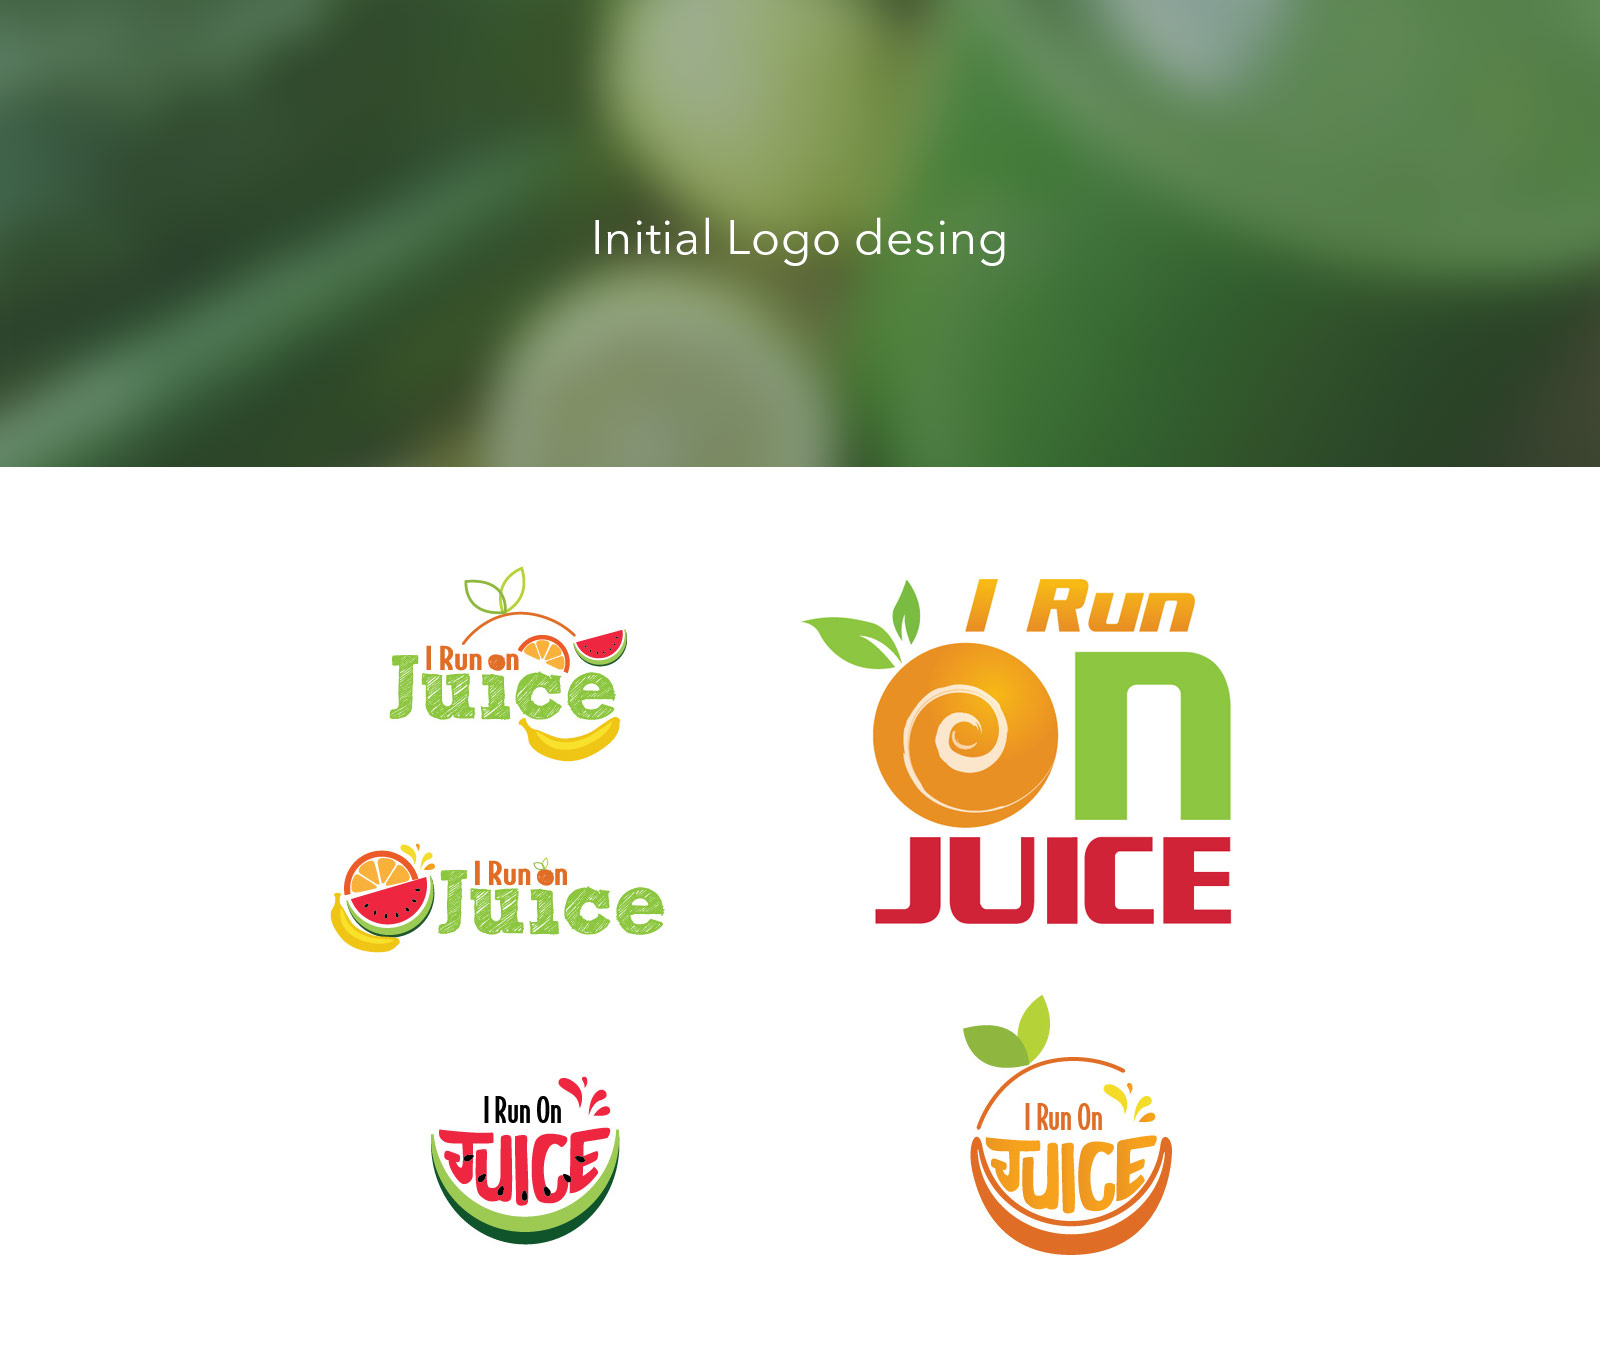 branding-i-run-juice-propose